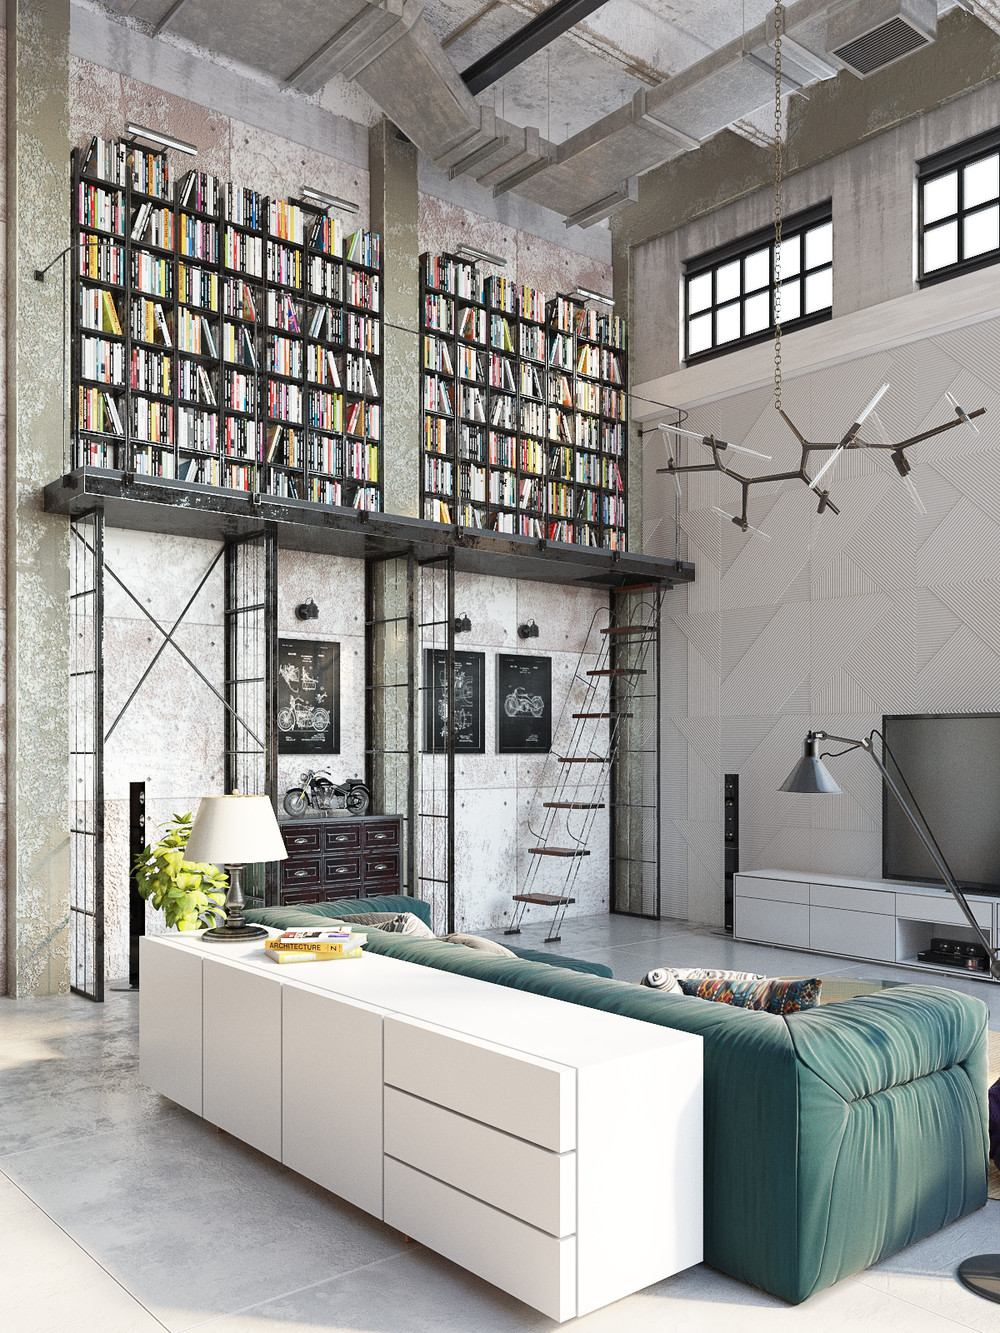 Industrial Room Design Ideas: Industrial Style Living Room Design: The Essential Guide